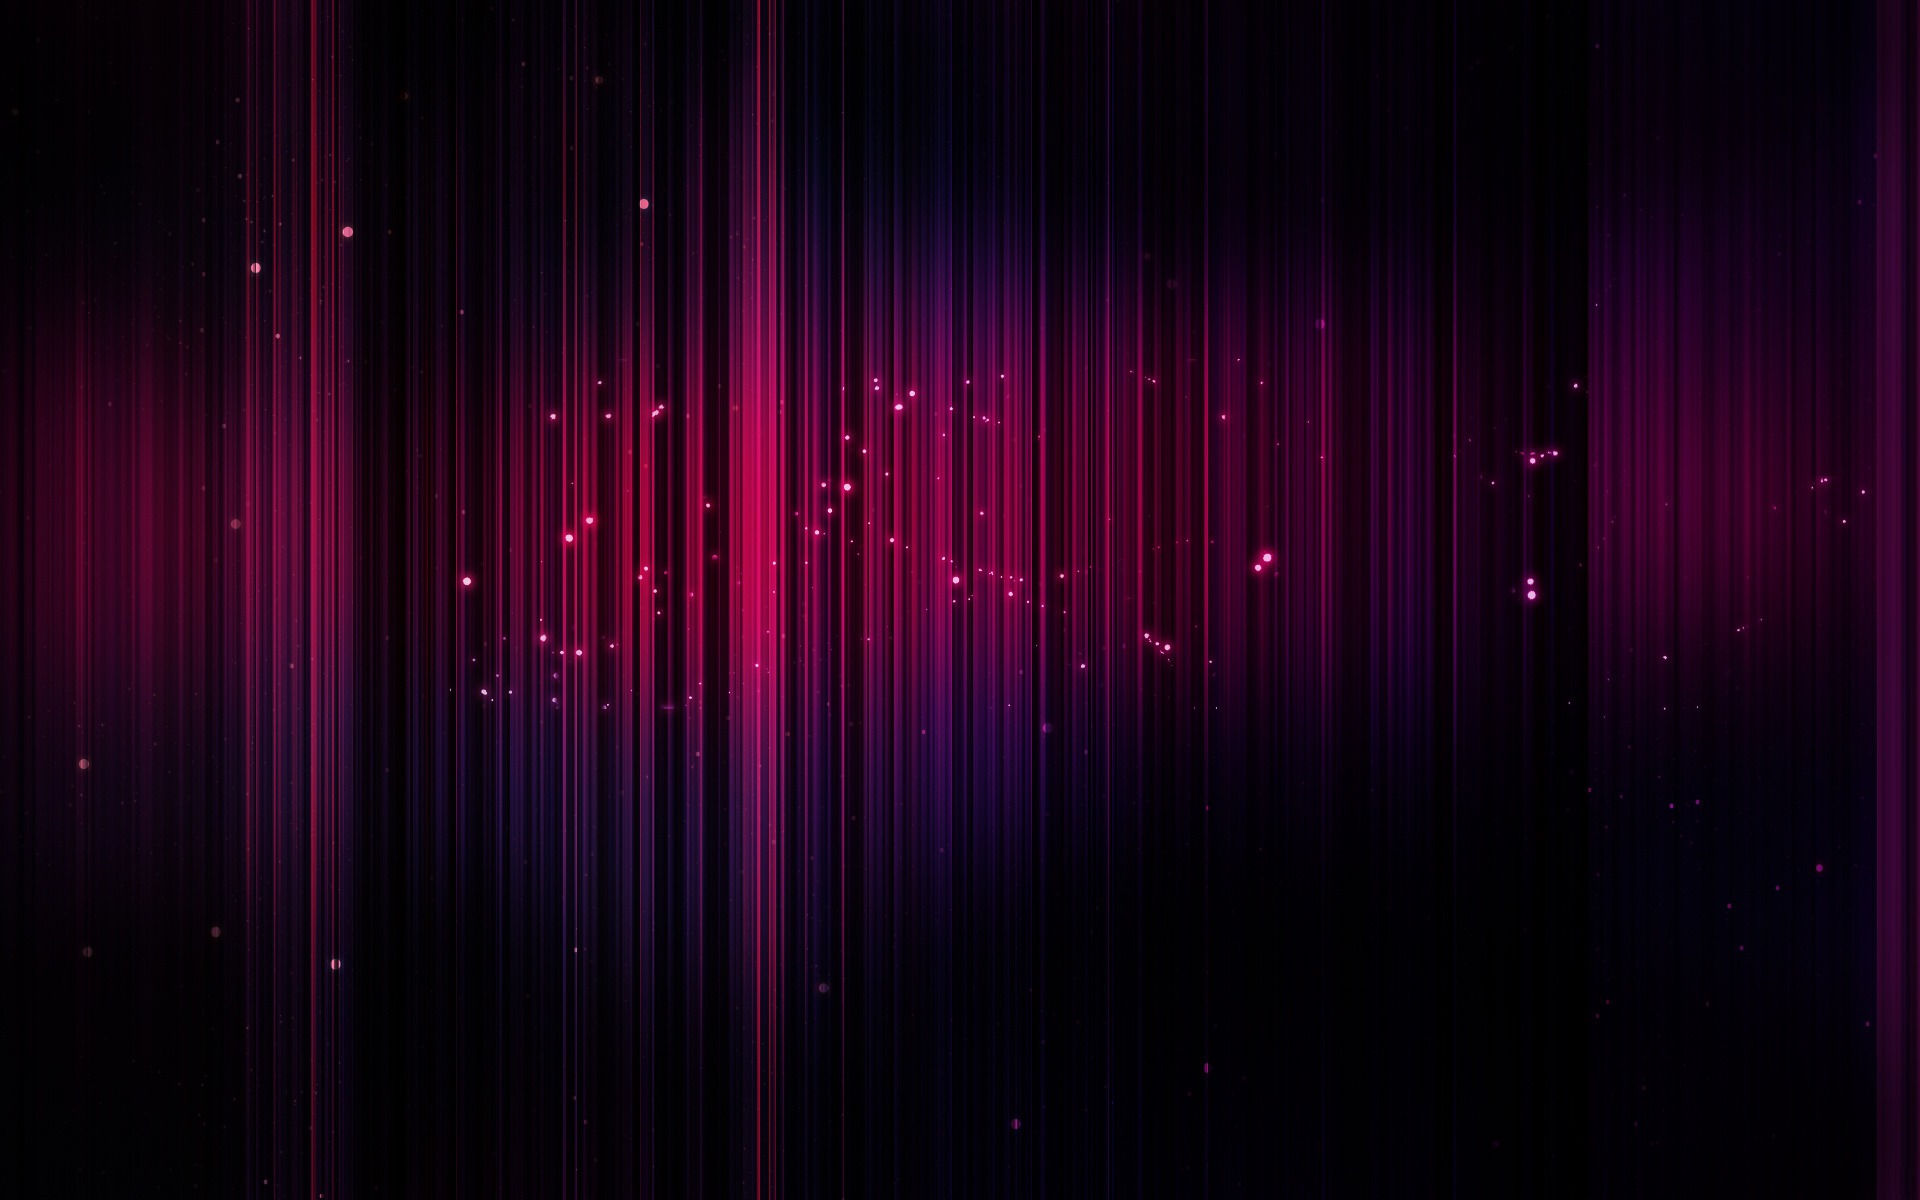 Purple abstract wallpapers 27706 1920x1200 px for Purple wallpaper for walls